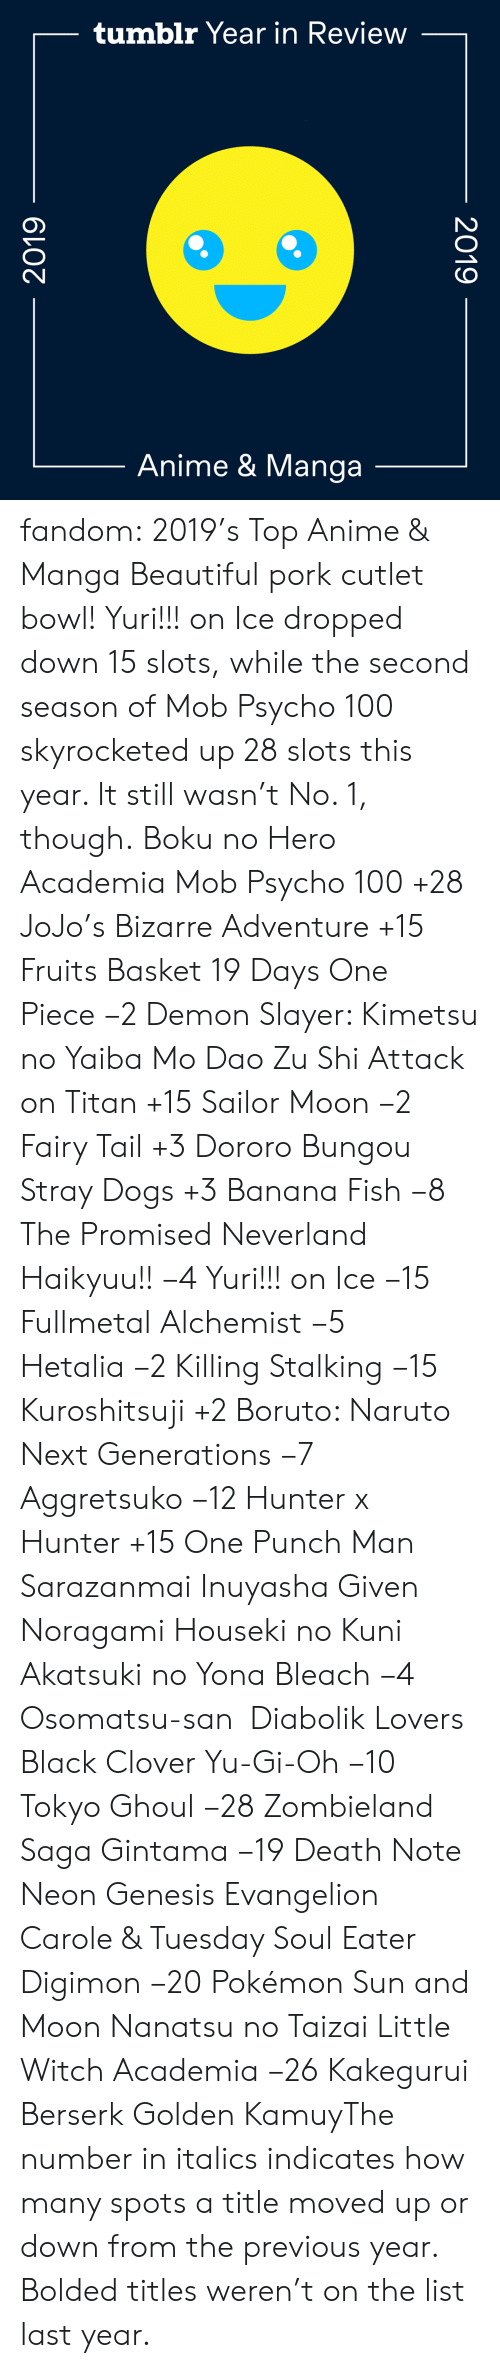 hunter: tumblr Year in Review  Anime & Manga  2019  2019 fandom:  2019's Top Anime & Manga  Beautiful pork cutlet bowl! Yuri!!! on Ice dropped down 15 slots, while the second season of Mob Psycho 100 skyrocketed up 28 slots this year. It still wasn't No. 1, though.  Boku no Hero Academia  Mob Psycho 100 +28  JoJo's Bizarre Adventure +15  Fruits Basket  19 Days  One Piece −2  Demon Slayer: Kimetsu no Yaiba  Mo Dao Zu Shi  Attack on Titan +15  Sailor Moon −2  Fairy Tail +3  Dororo  Bungou Stray Dogs +3  Banana Fish −8  The Promised Neverland  Haikyuu!! −4  Yuri!!! on Ice −15  Fullmetal Alchemist −5  Hetalia −2  Killing Stalking −15  Kuroshitsuji +2  Boruto: Naruto Next Generations −7  Aggretsuko −12  Hunter x Hunter +15  One Punch Man  Sarazanmai  Inuyasha  Given  Noragami  Houseki no Kuni  Akatsuki no Yona  Bleach −4  Osomatsu-san   Diabolik Lovers  Black Clover  Yu-Gi-Oh −10  Tokyo Ghoul −28  Zombieland Saga  Gintama −19  Death Note  Neon Genesis Evangelion  Carole & Tuesday  Soul Eater  Digimon −20  Pokémon Sun and Moon  Nanatsu no Taizai  Little Witch Academia −26  Kakegurui  Berserk Golden KamuyThe number in italics indicates how many spots a title moved up or down from the previous year. Bolded titles weren't on the list last year.